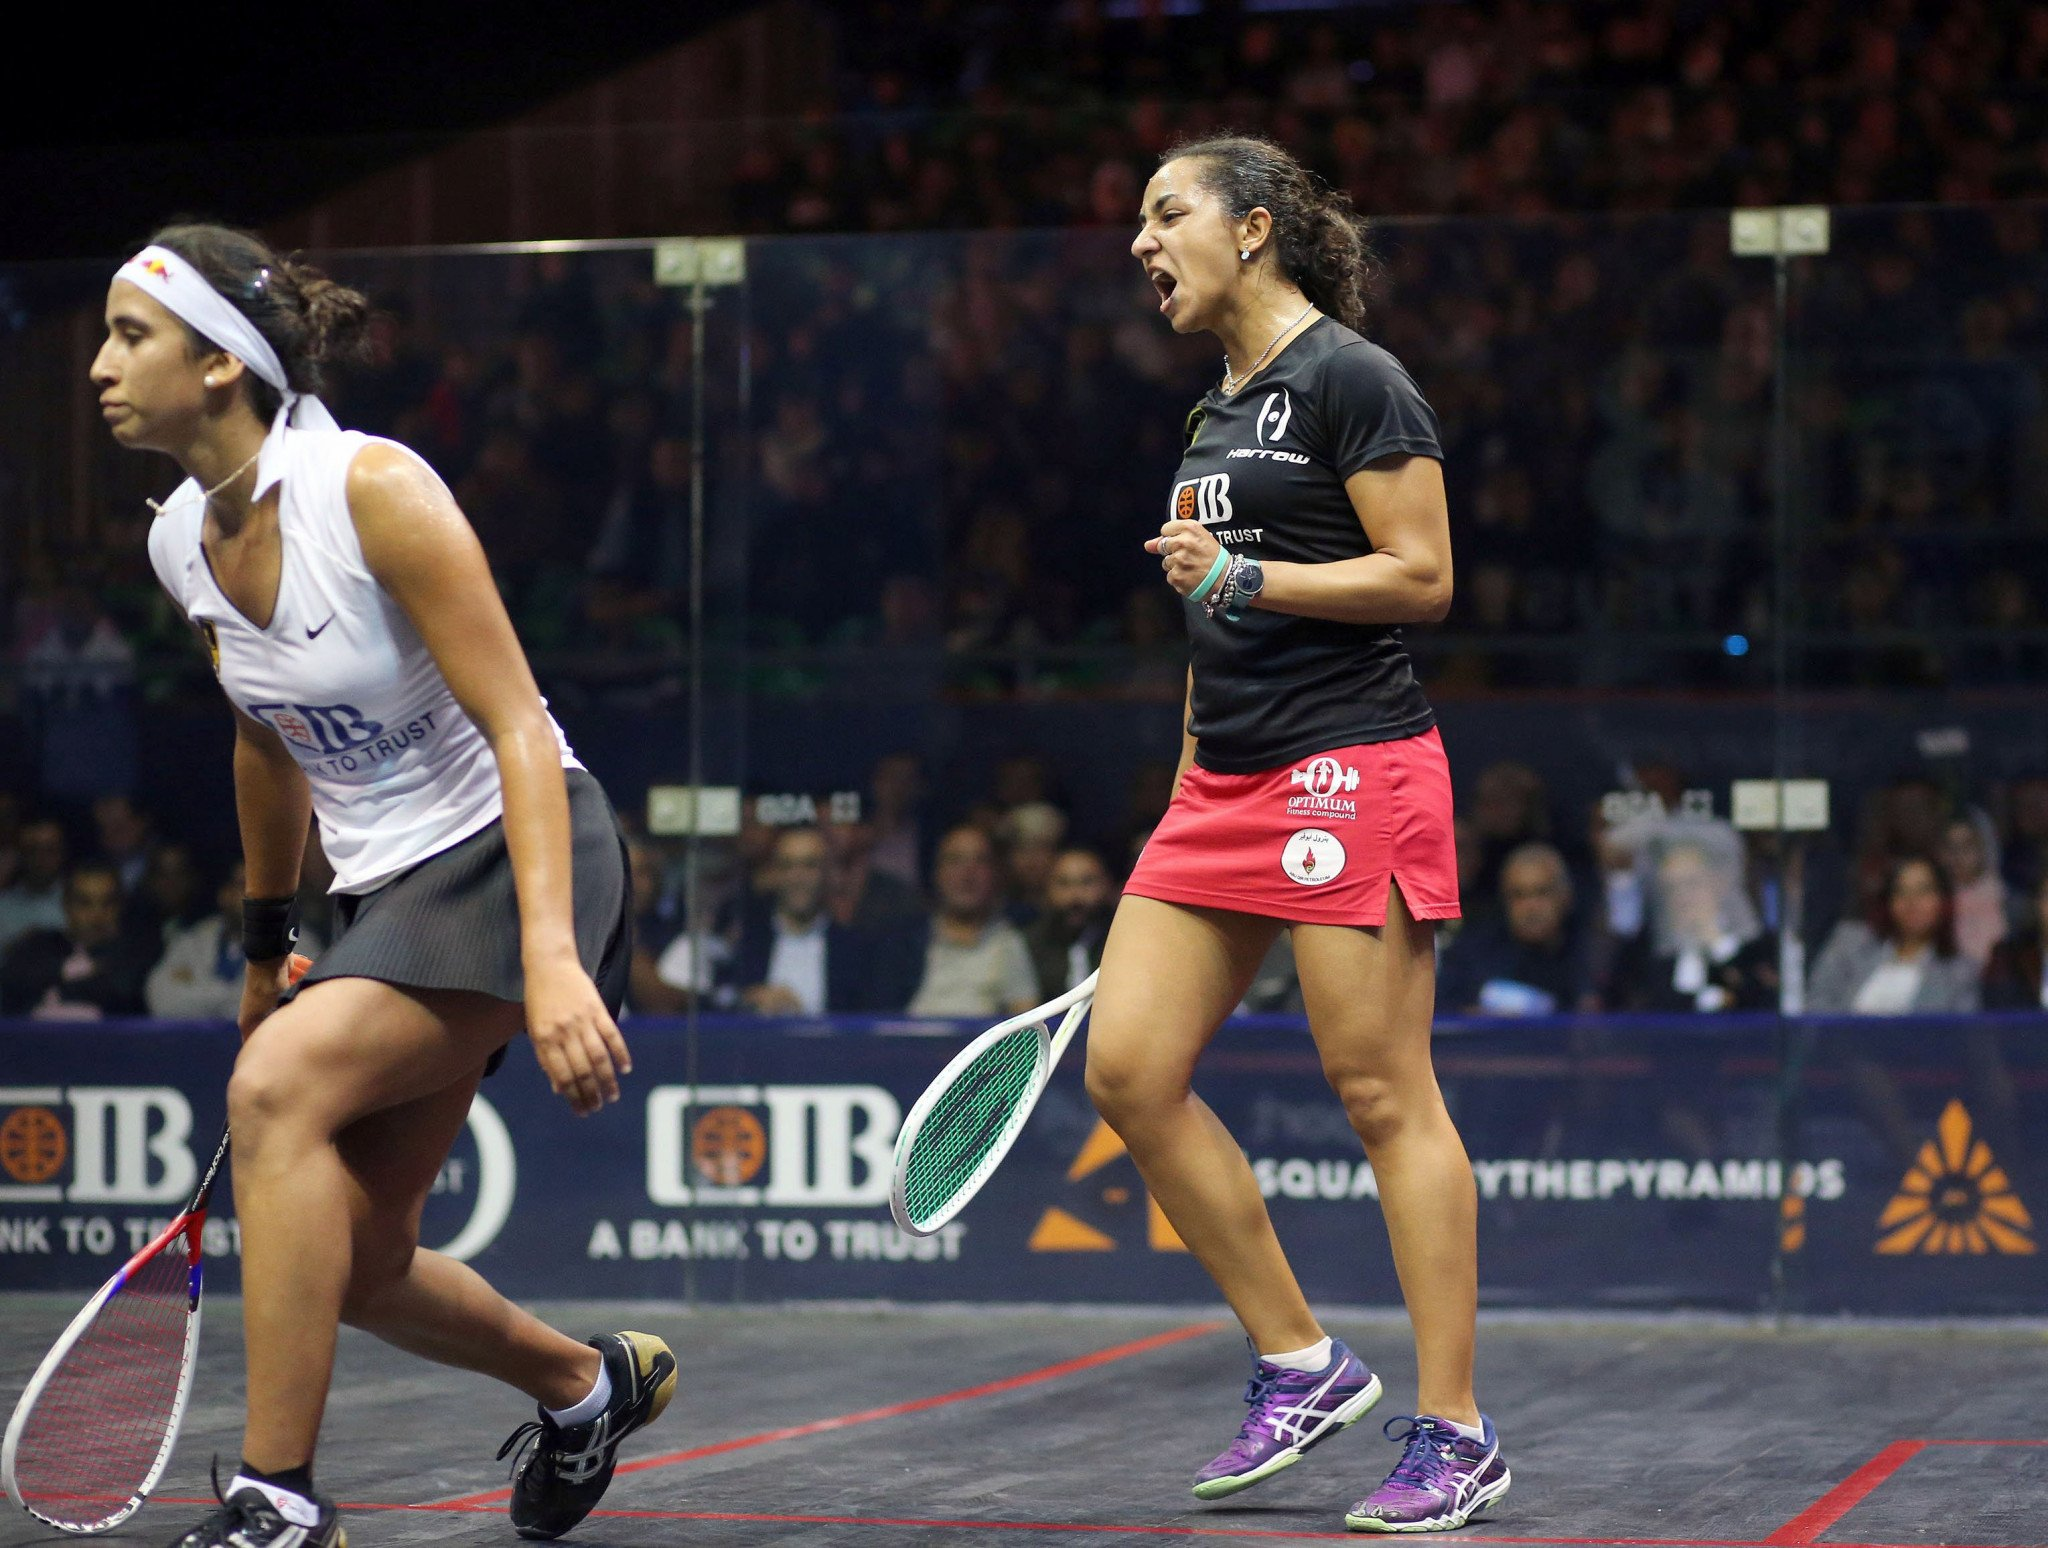 El Welily to face El Sherbini in PSA Women's World Championship final